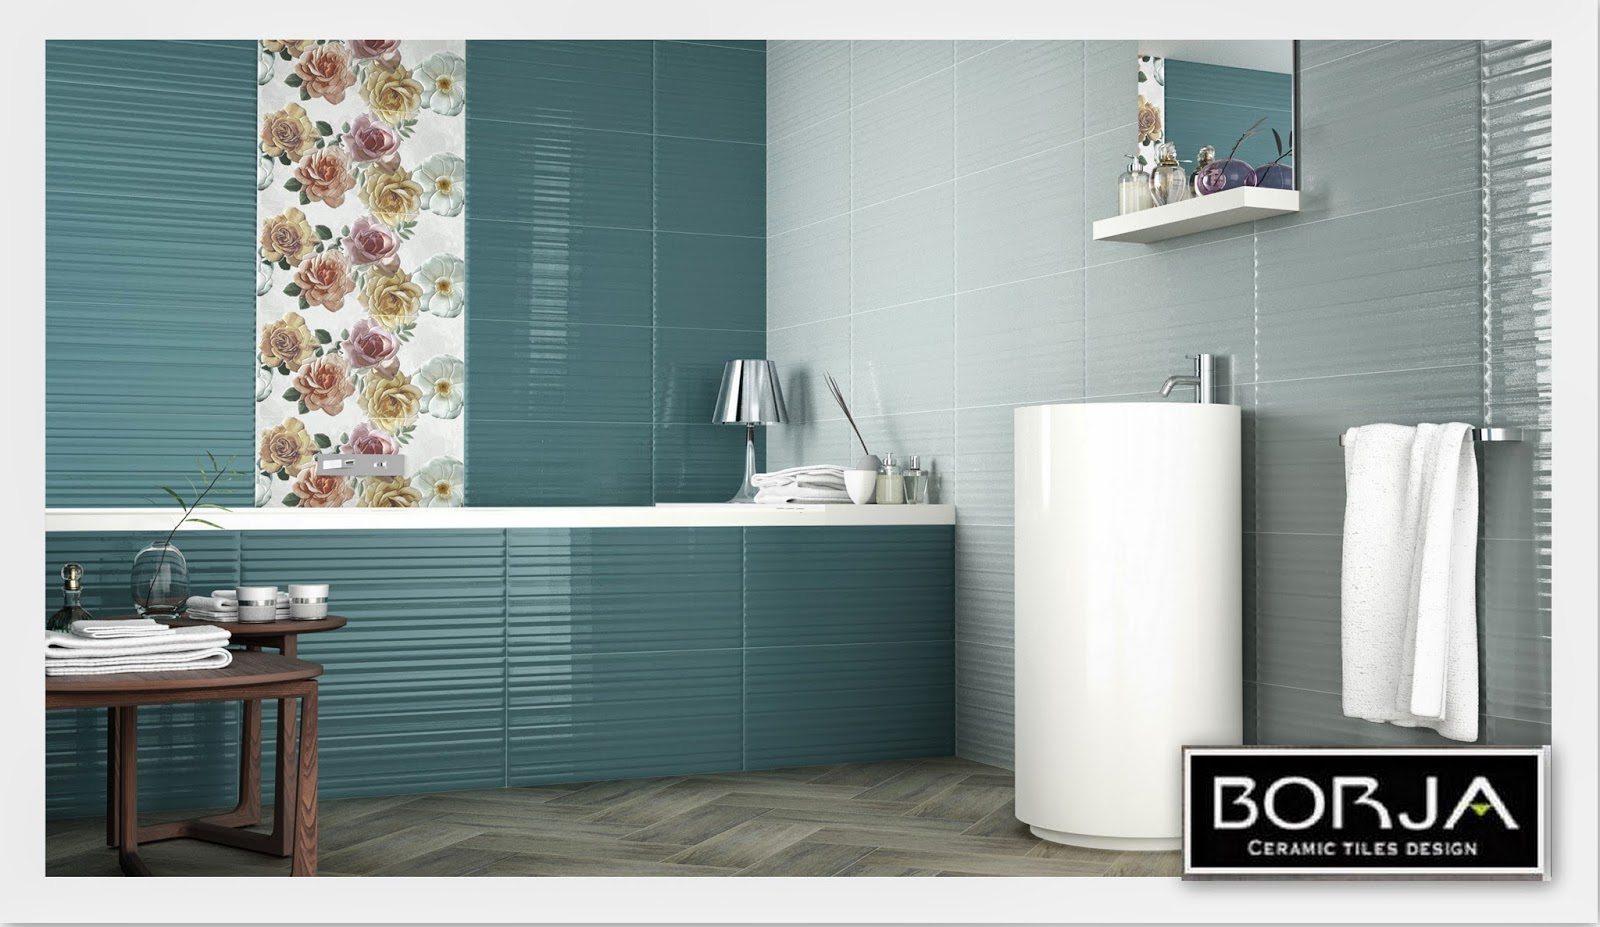 new walls bathroom u0026 kitchens 30x60 borja ceramic tiles design